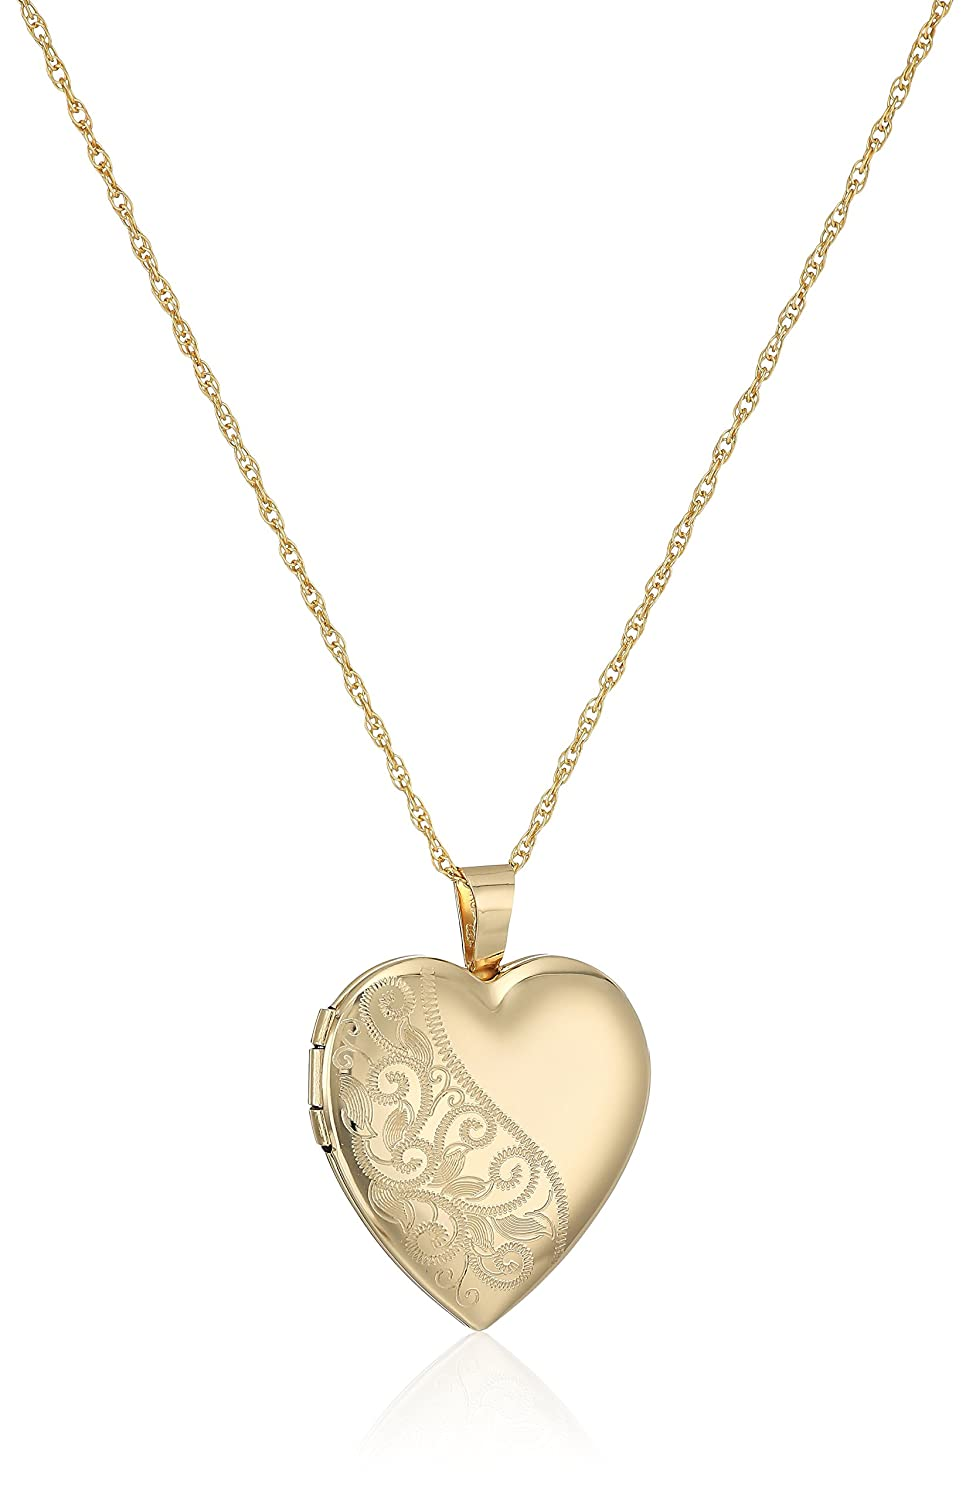 14k Gold-Filled Satin and Polished Finish Hand Engraved Heart Shaped Locket Necklace, 18 18 Amazon Collection AMZ6002F